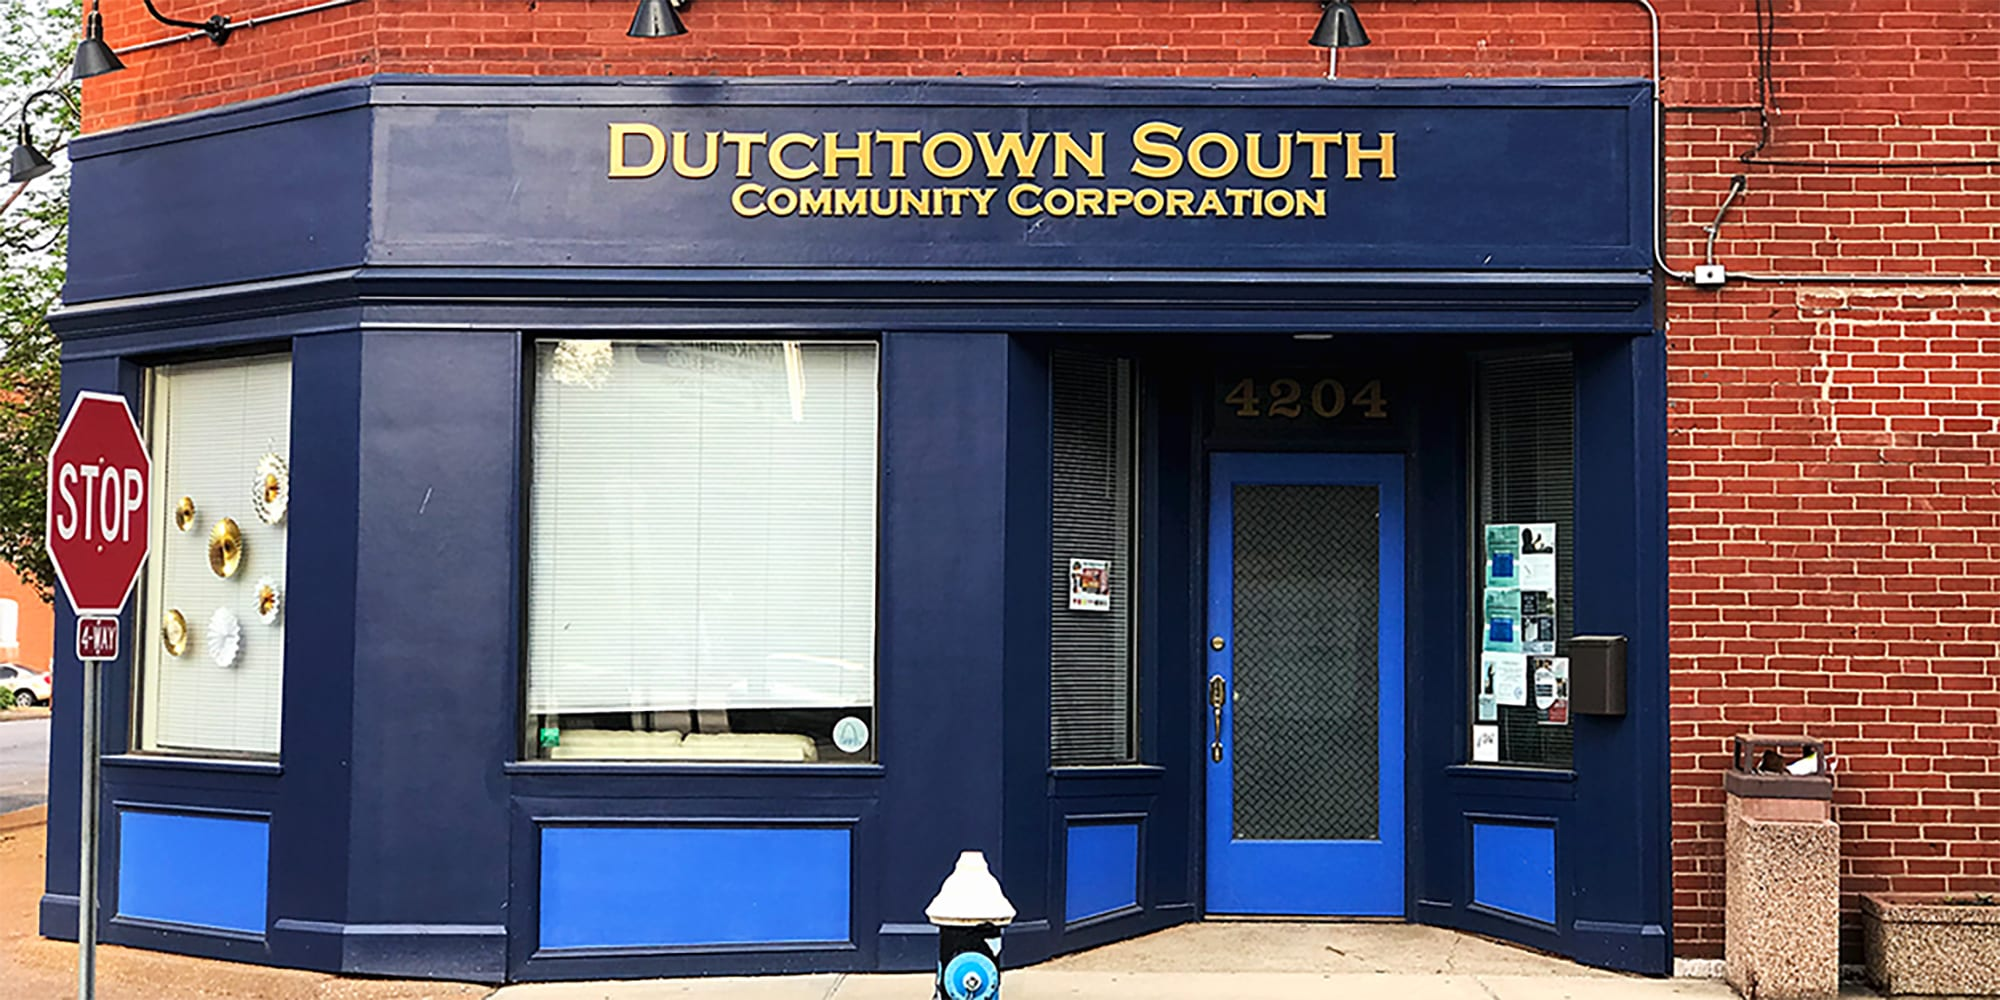 Dutchtown South Community Corporation's office at Virginia and Meramec.